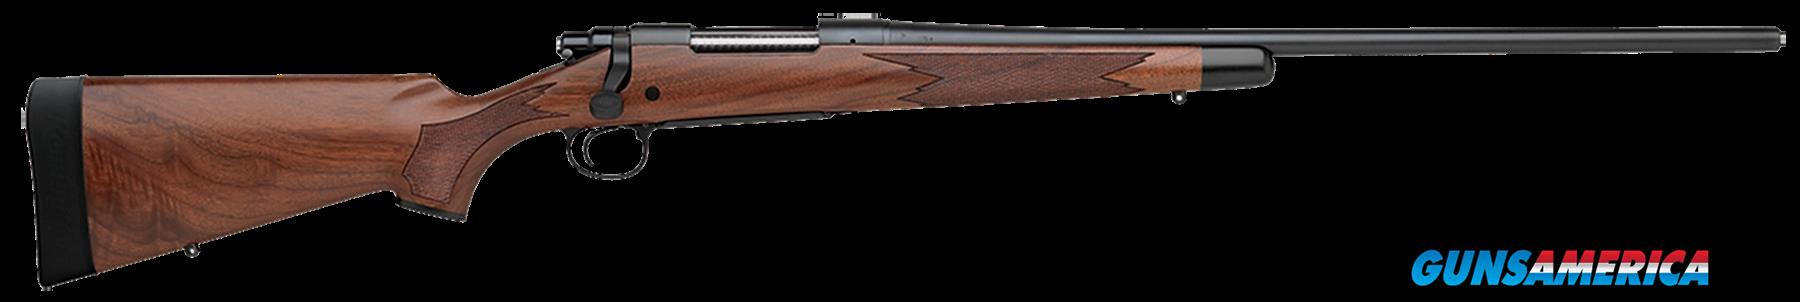 "Remington Firearms 27017 700 CDL Bolt 30-06 Springfield 24"" 4+1 American Walnut Stk Blued  Guns > Rifles > R Misc Rifles"